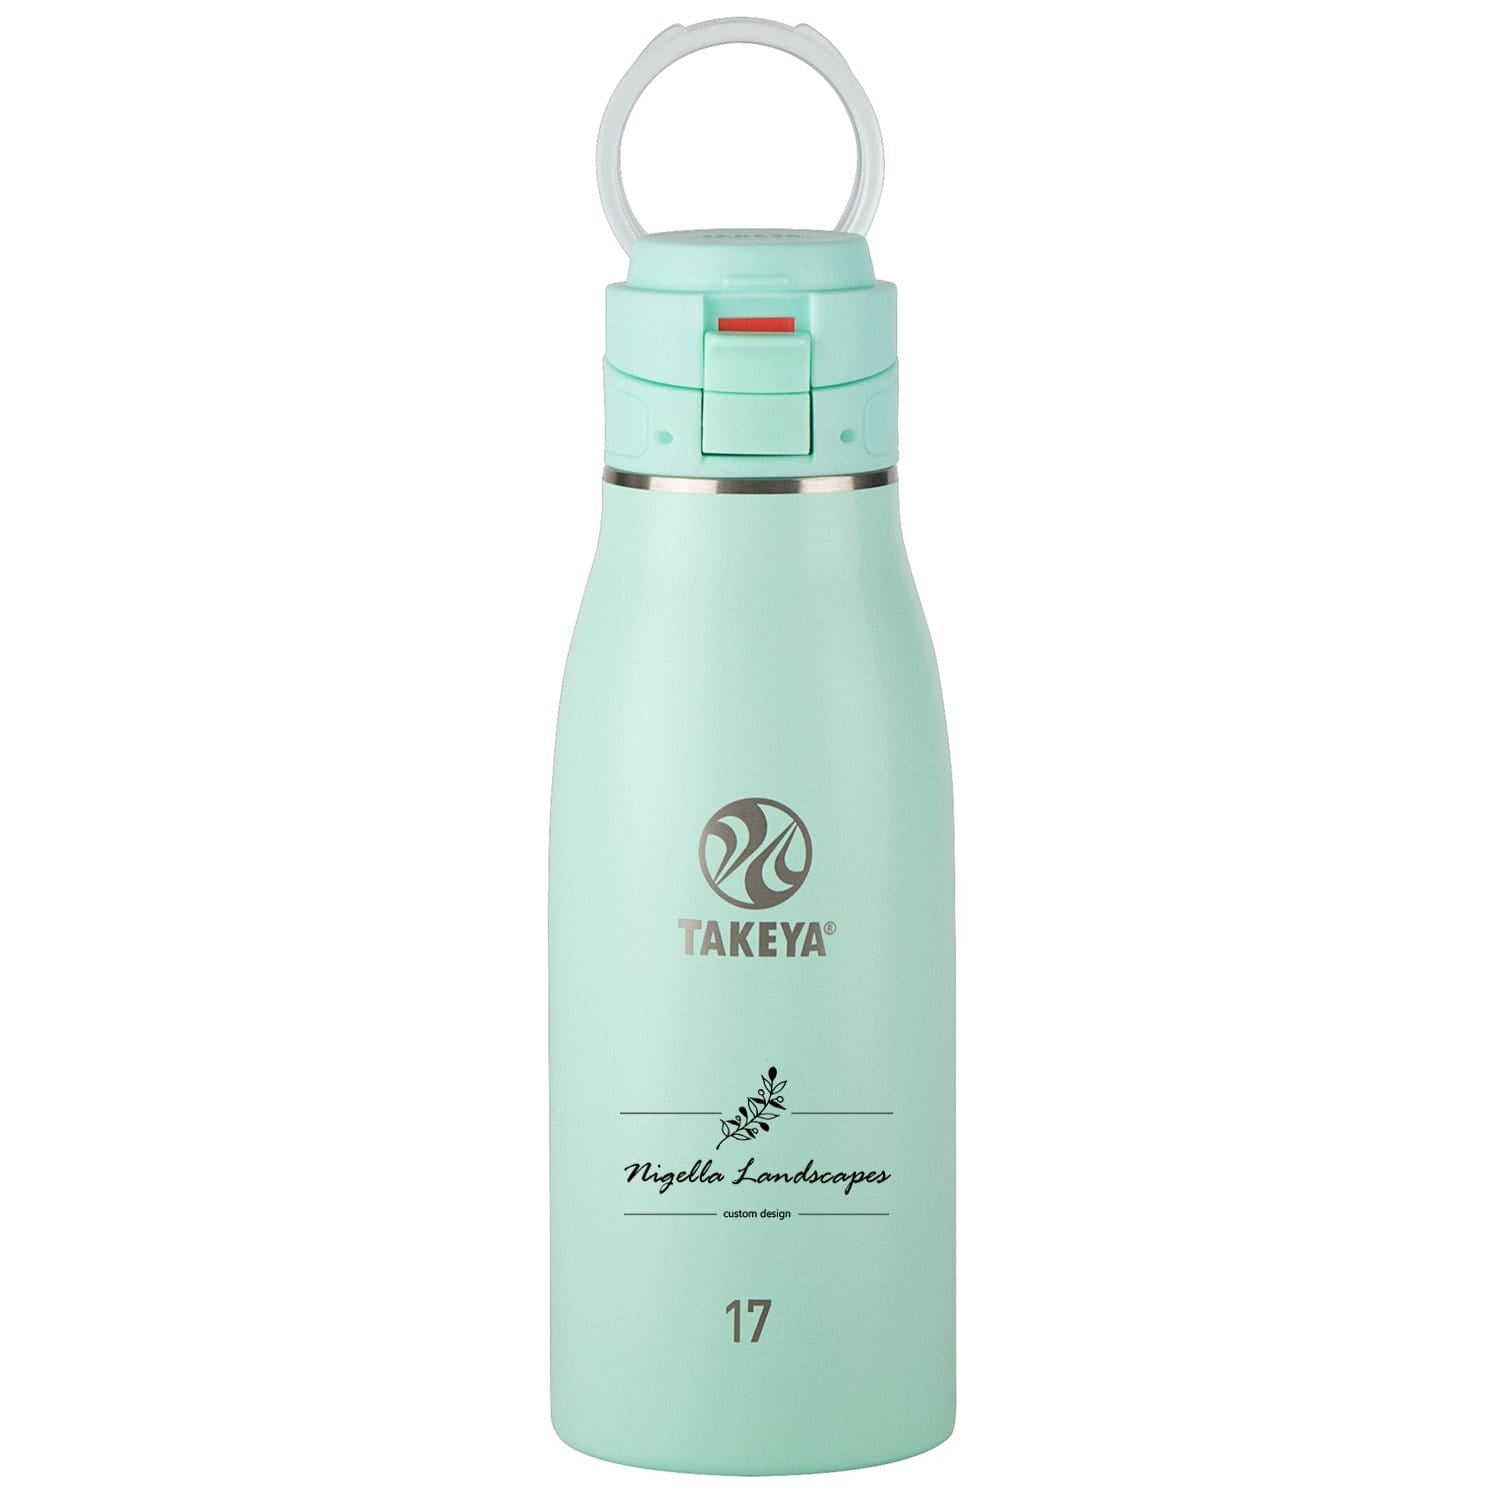 TAKEYA Accessories 17oz / Aqua TAKEYA TRAVELER 17 OZ